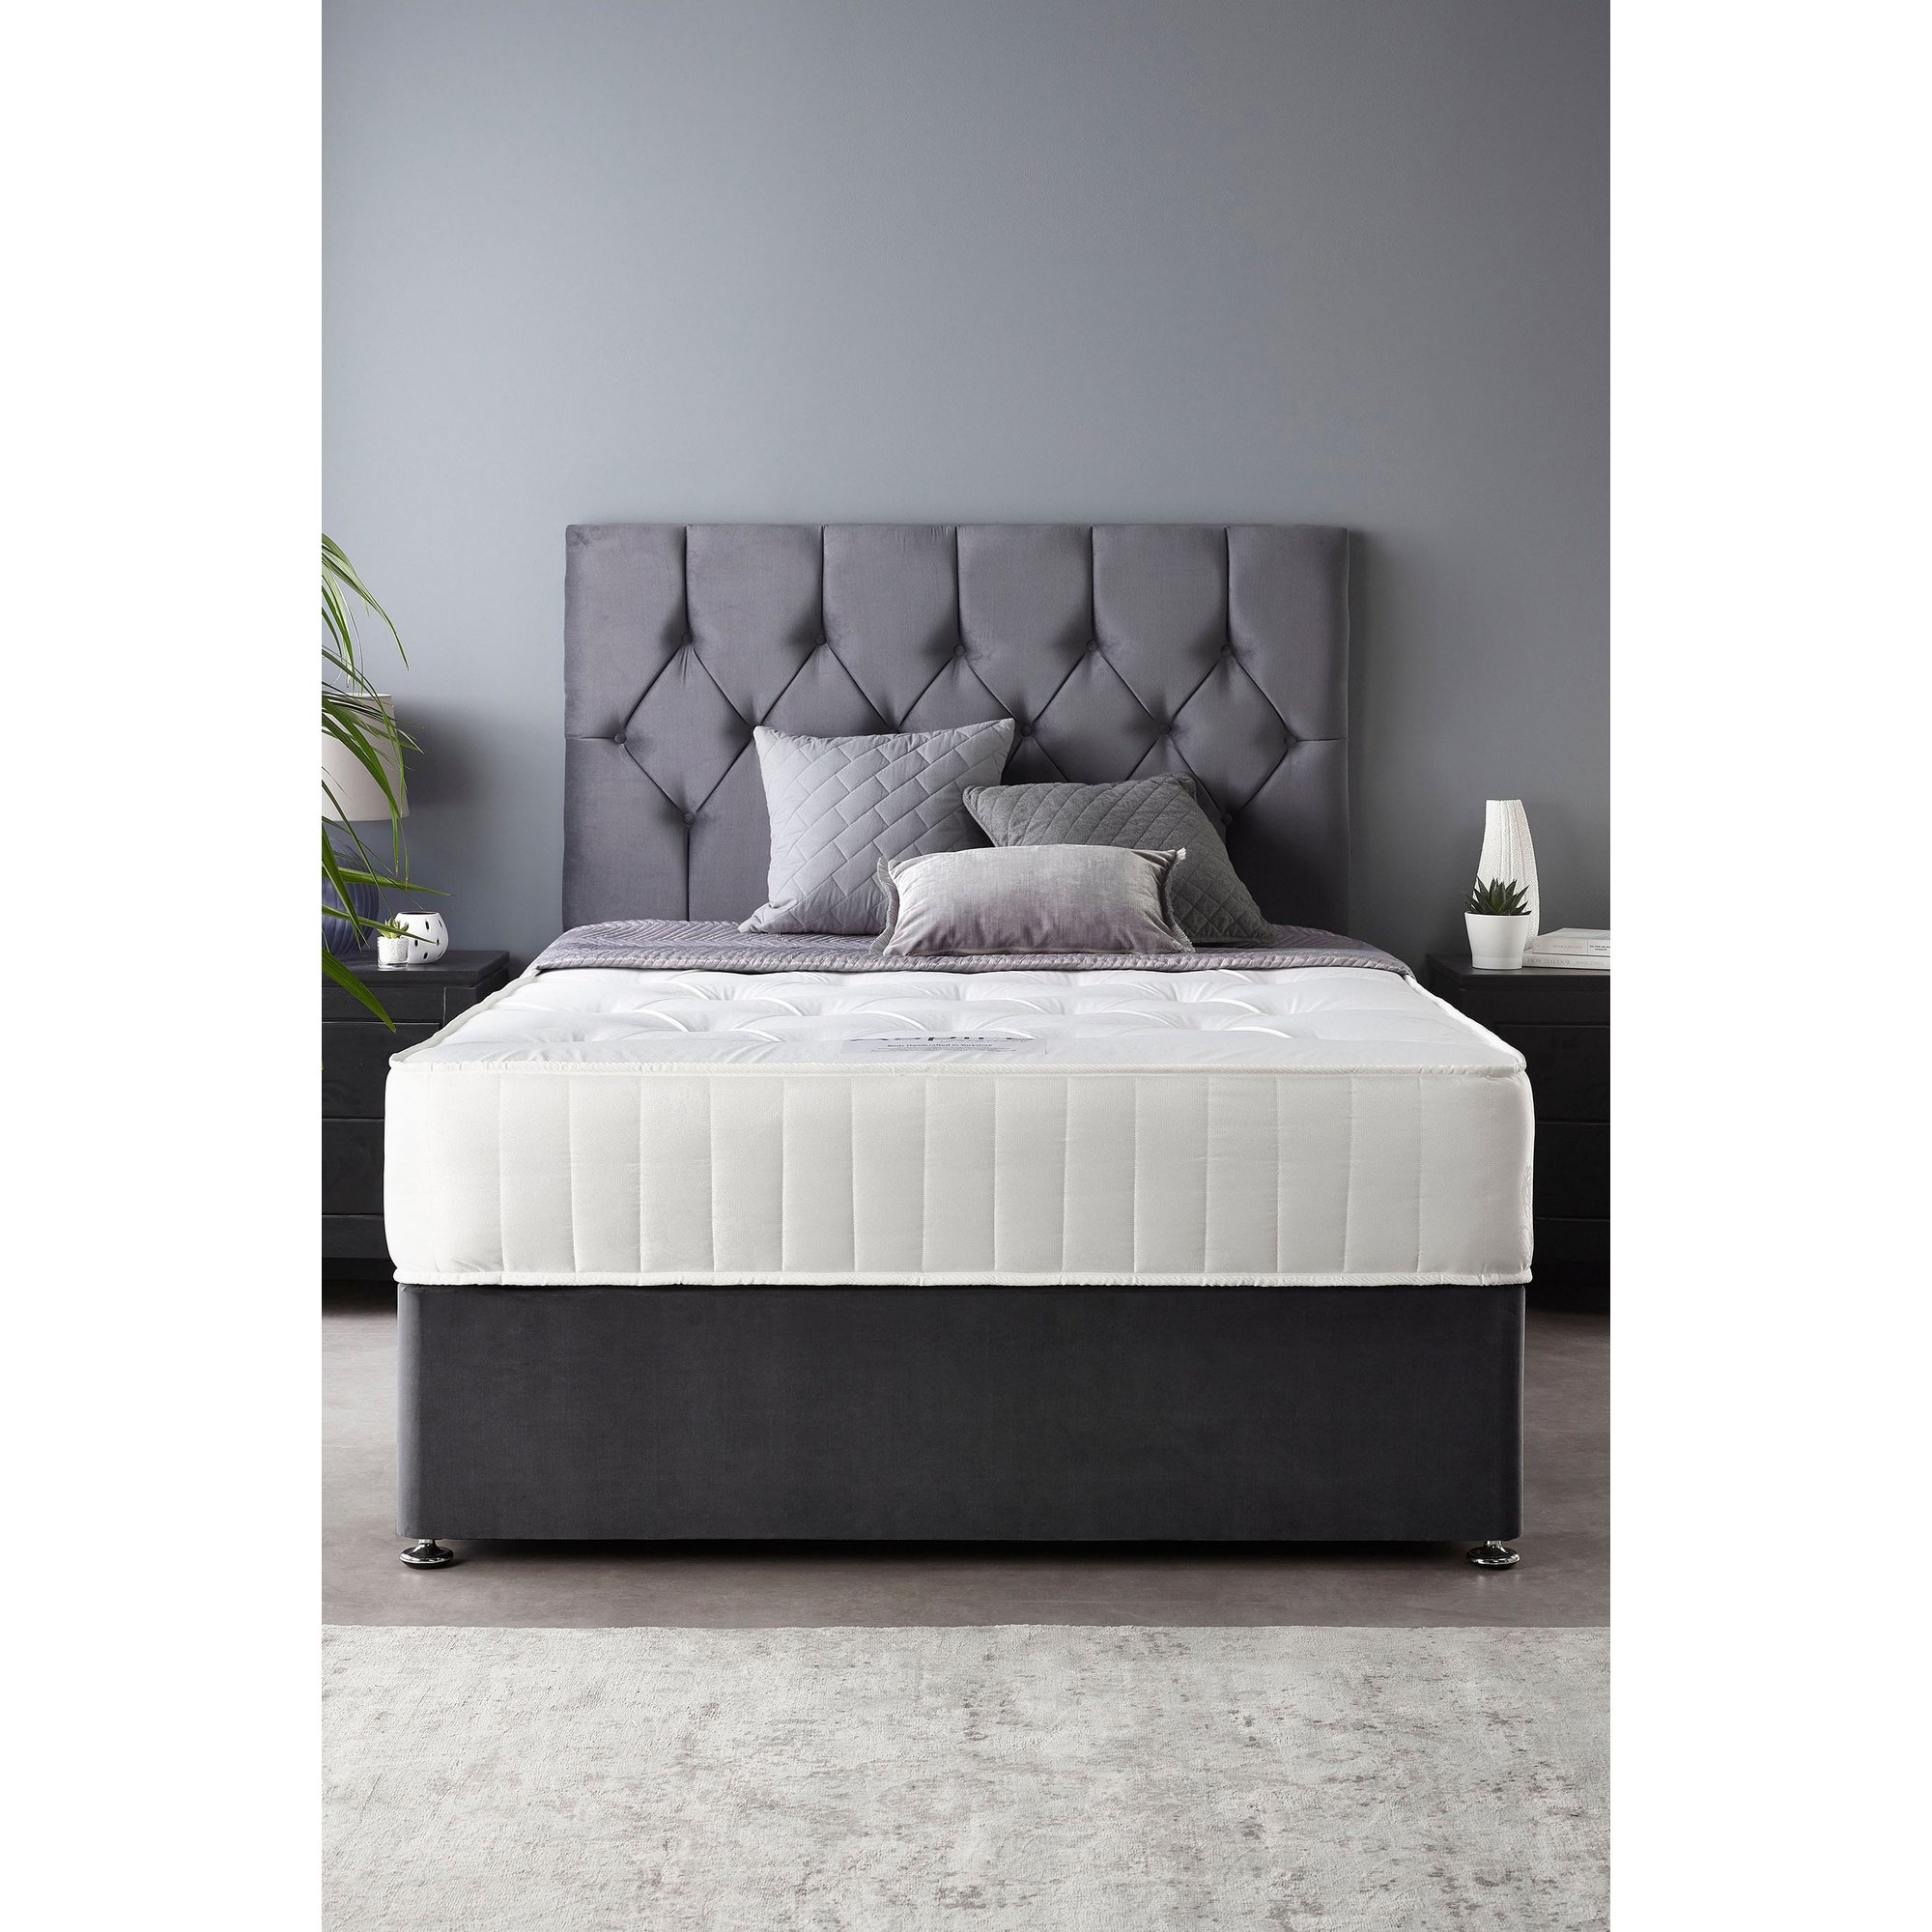 Image of Catherine Lansfield Boutique Ortho Pocket No Storage Divan Bed